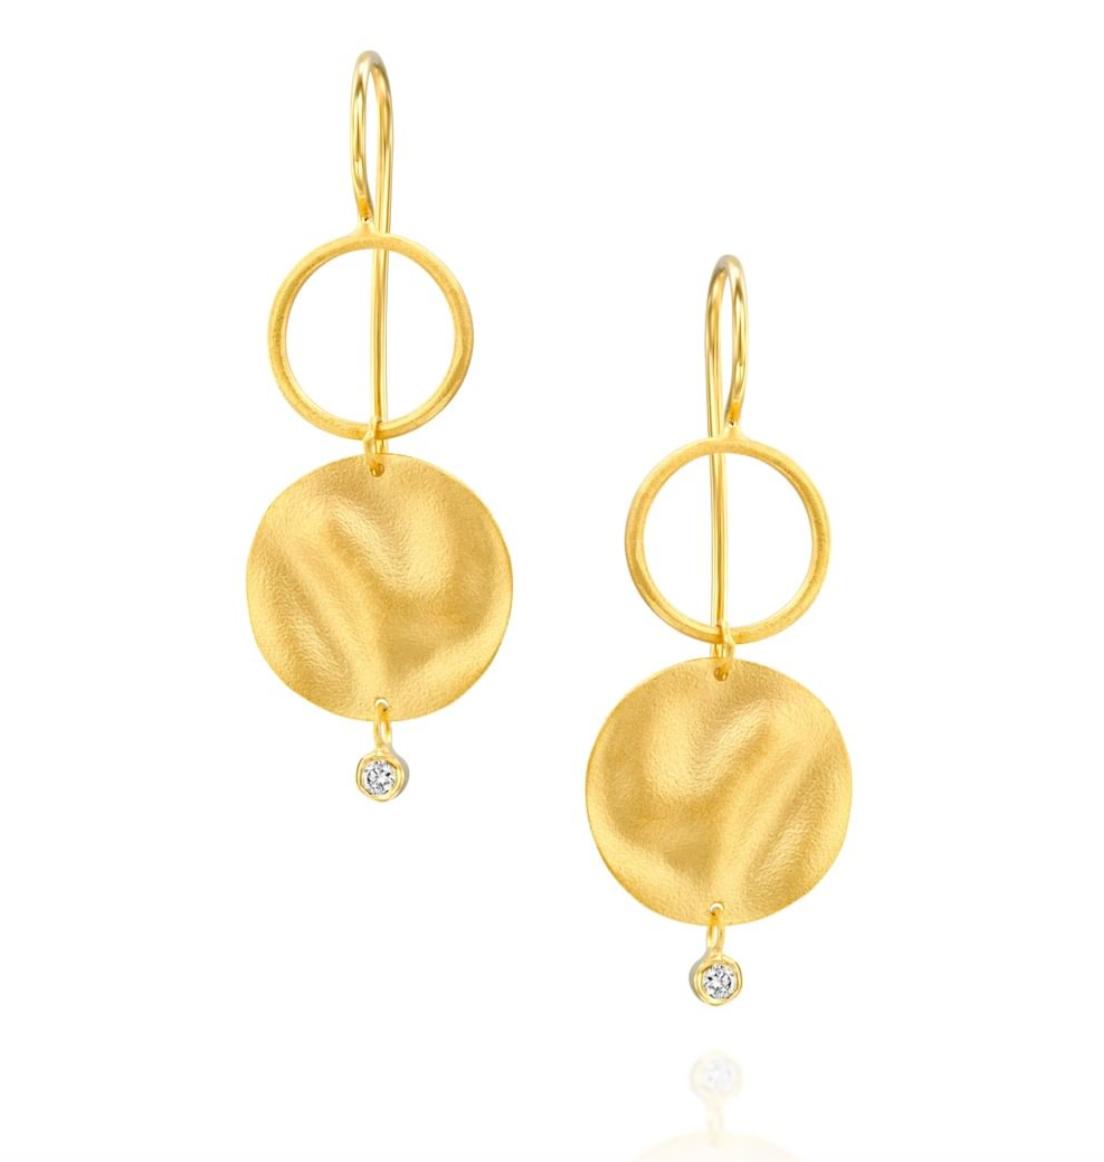 14 Carat Gold Medici Earrings - Gemma Stone  ABN:51 621 127 866